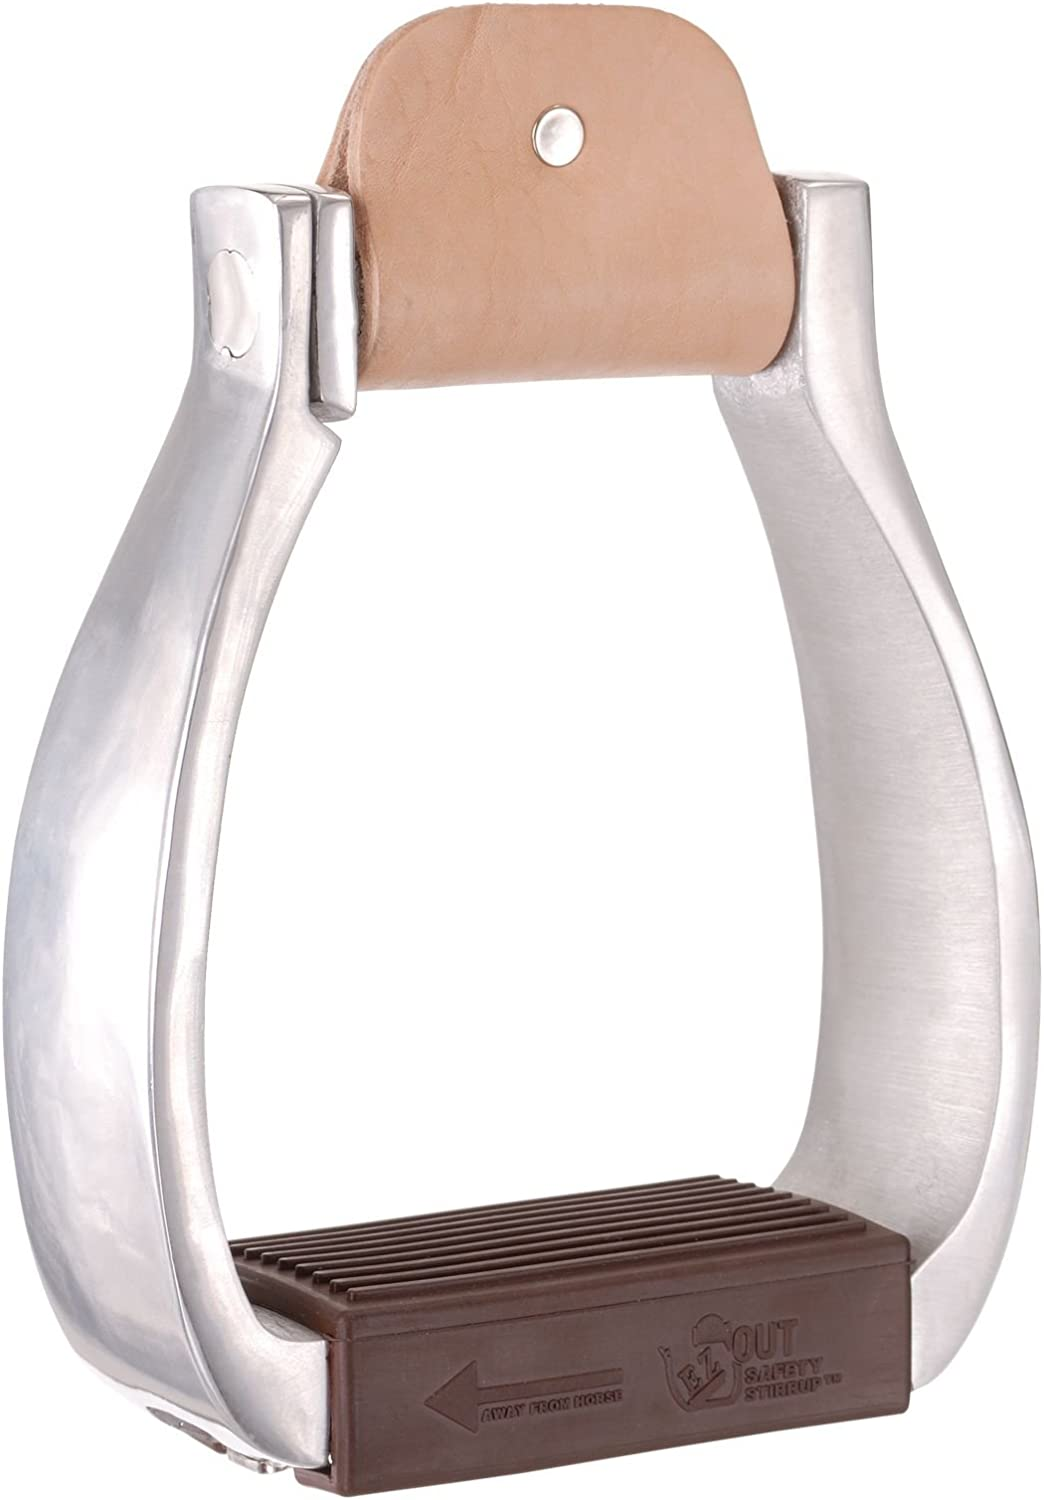 Tough 1 EZ Out Safety Stirrup, 3Inch